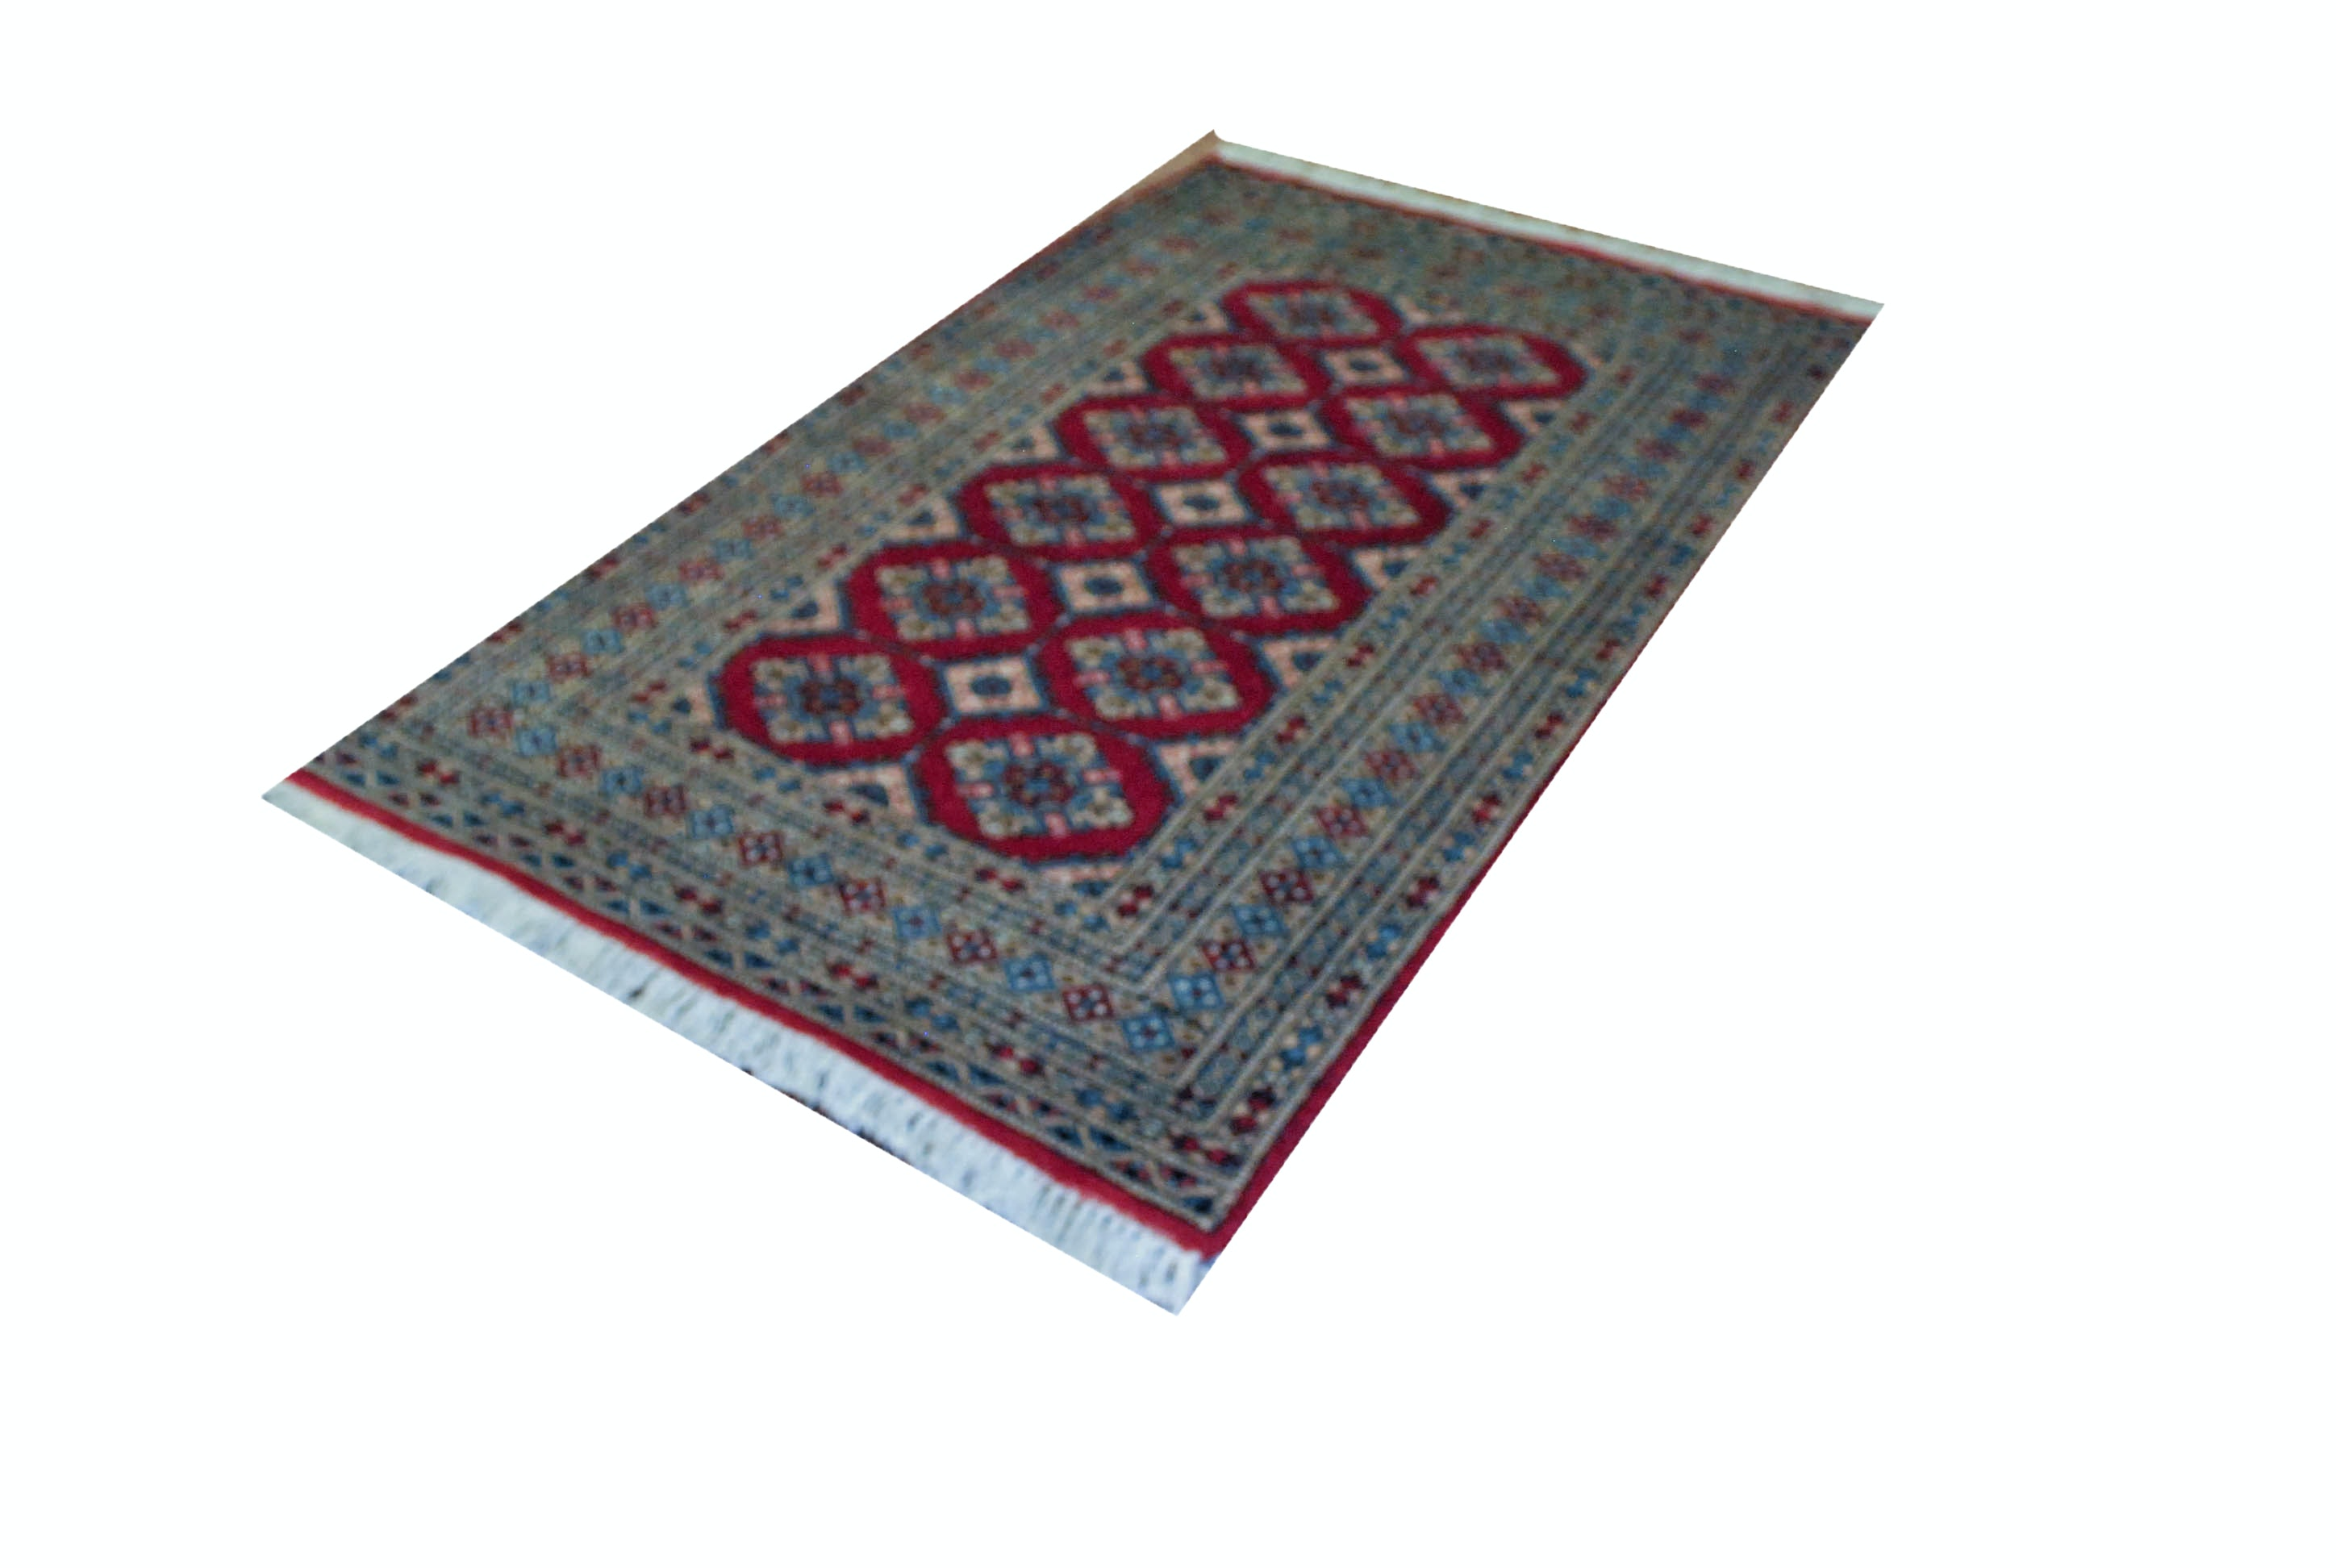 Hand Knotted Persian Style Rug with Compound Border